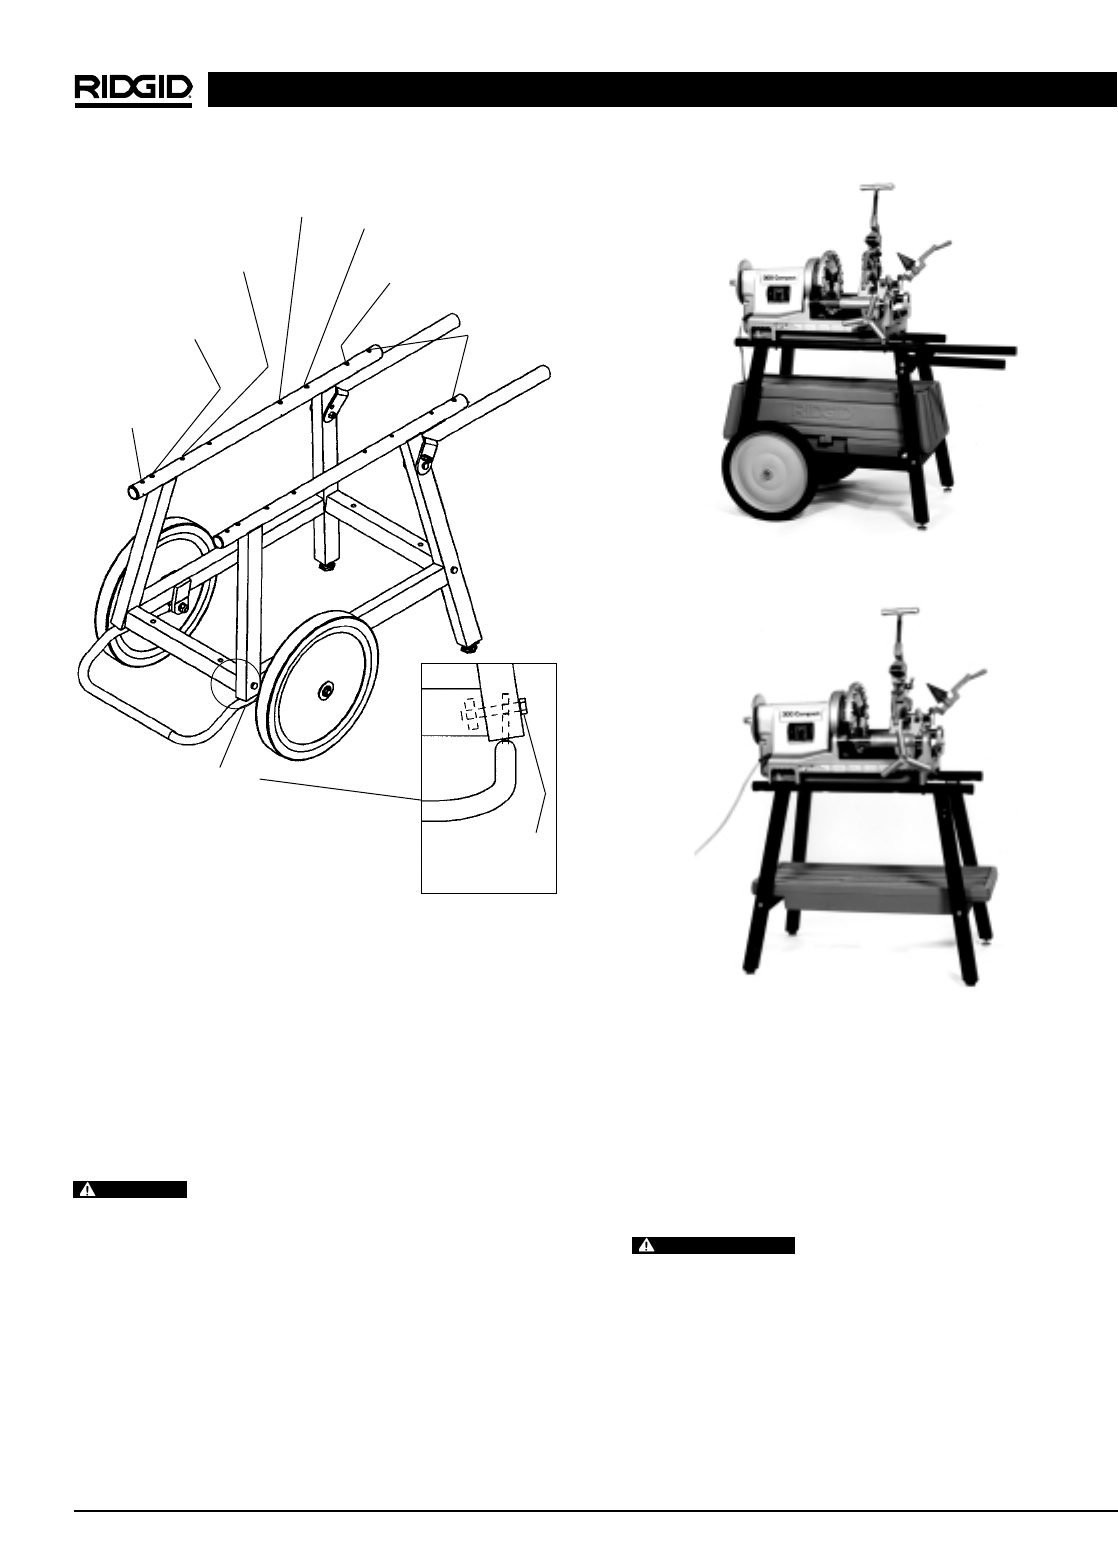 Page 50 Of Ridgid Sewing Machine 300 User Guide